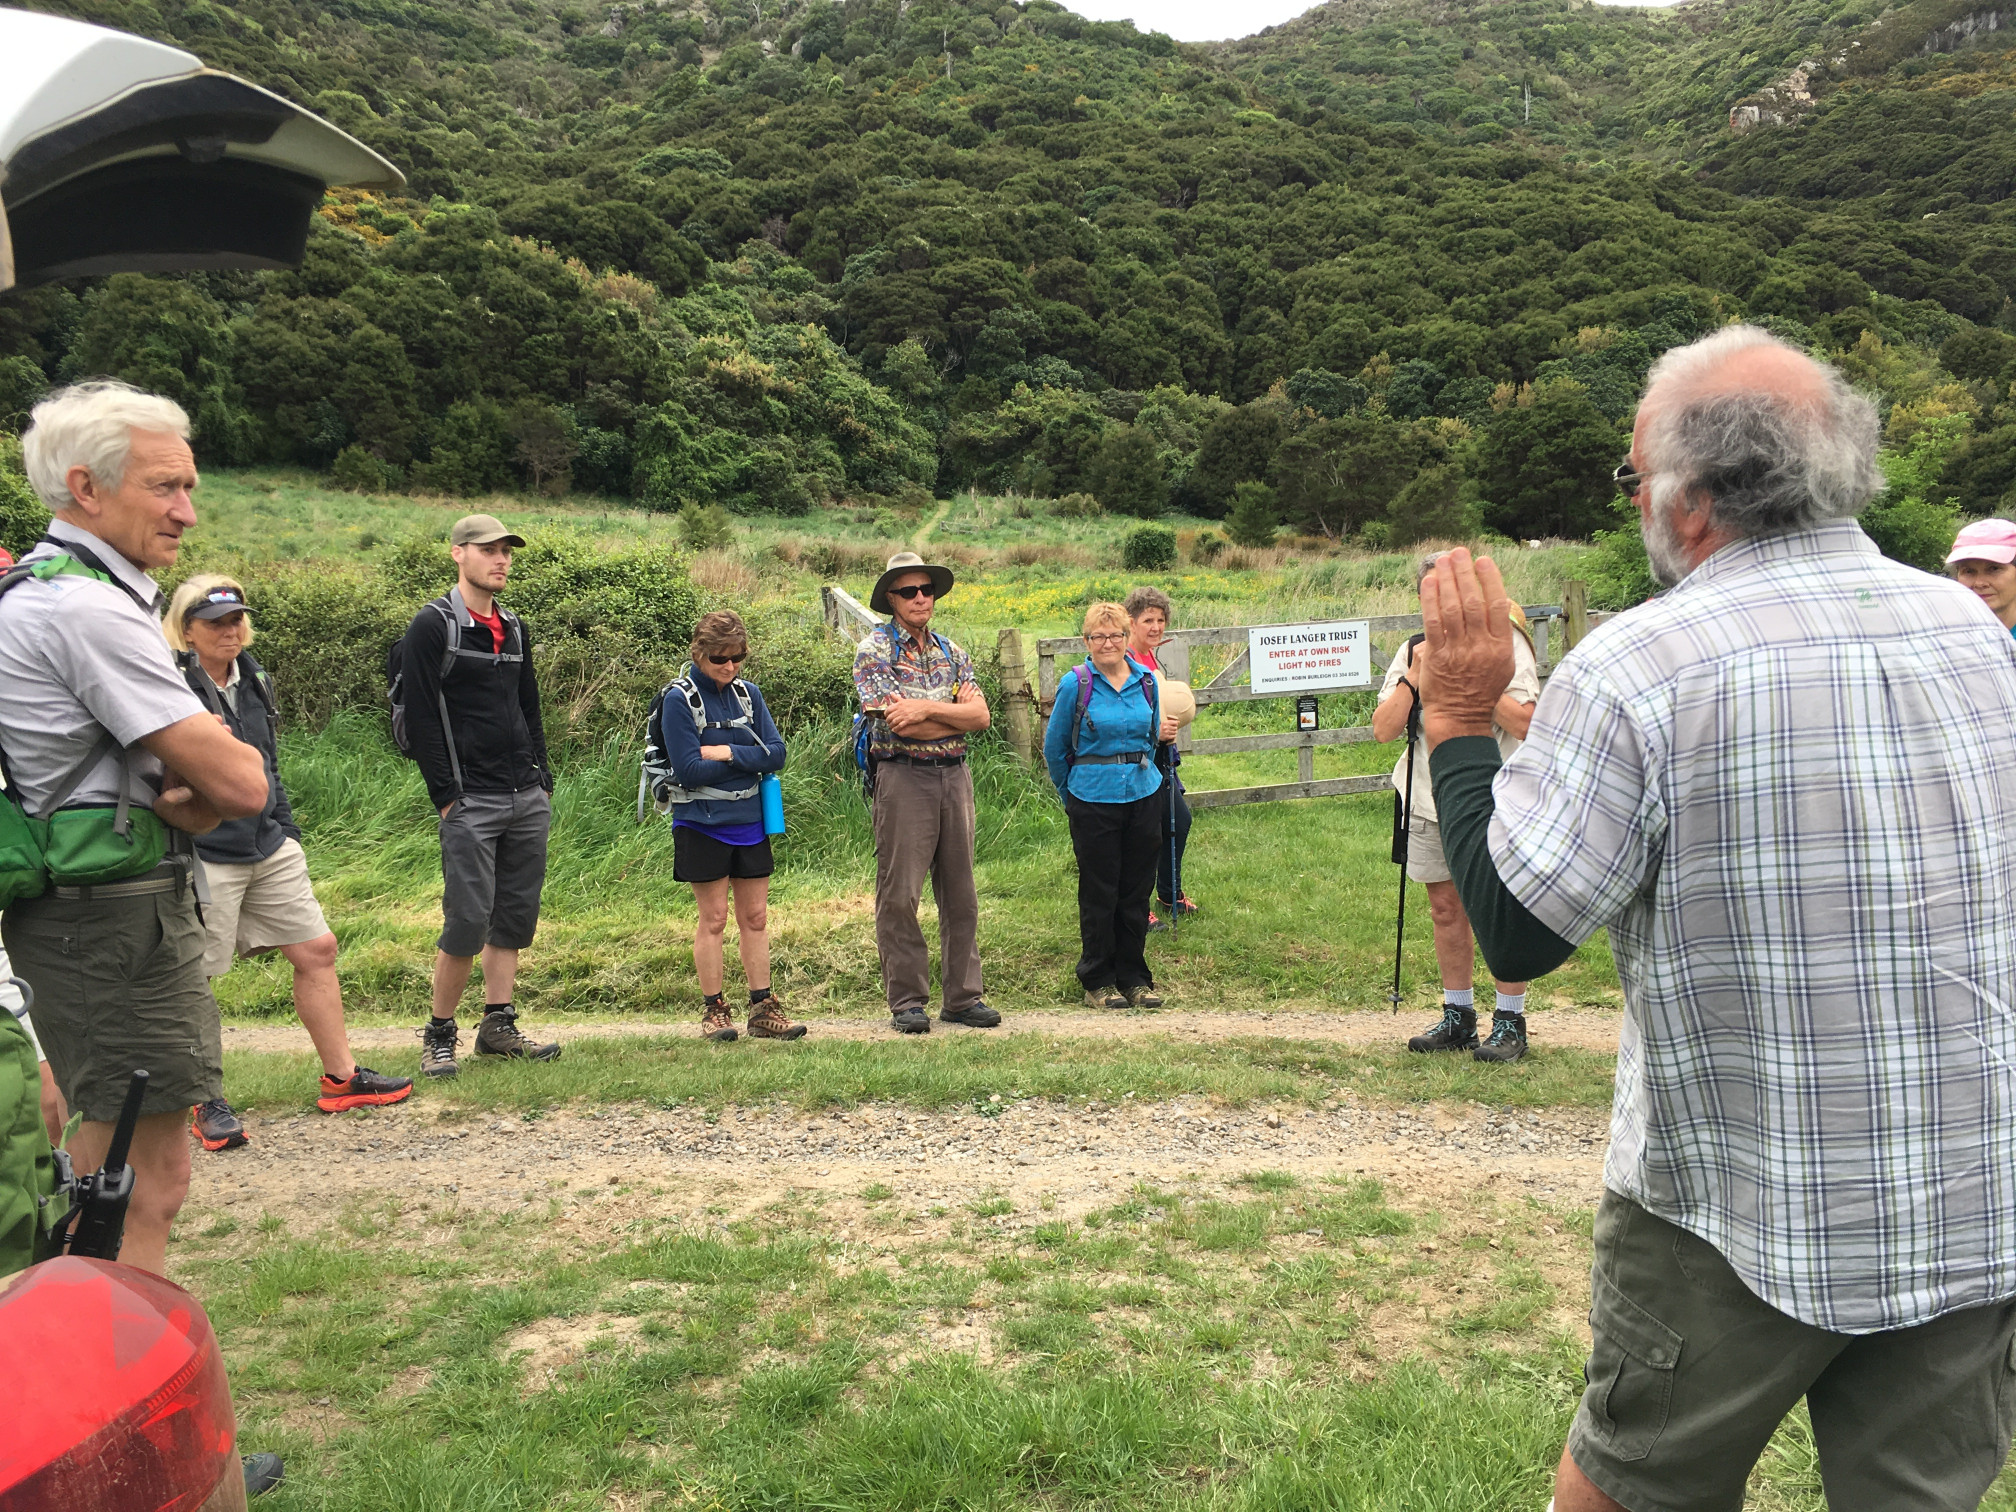 Josef Langer Charitable Trust New Zealand - Walking Festival, Akaroa, Banks Peninsula (4)